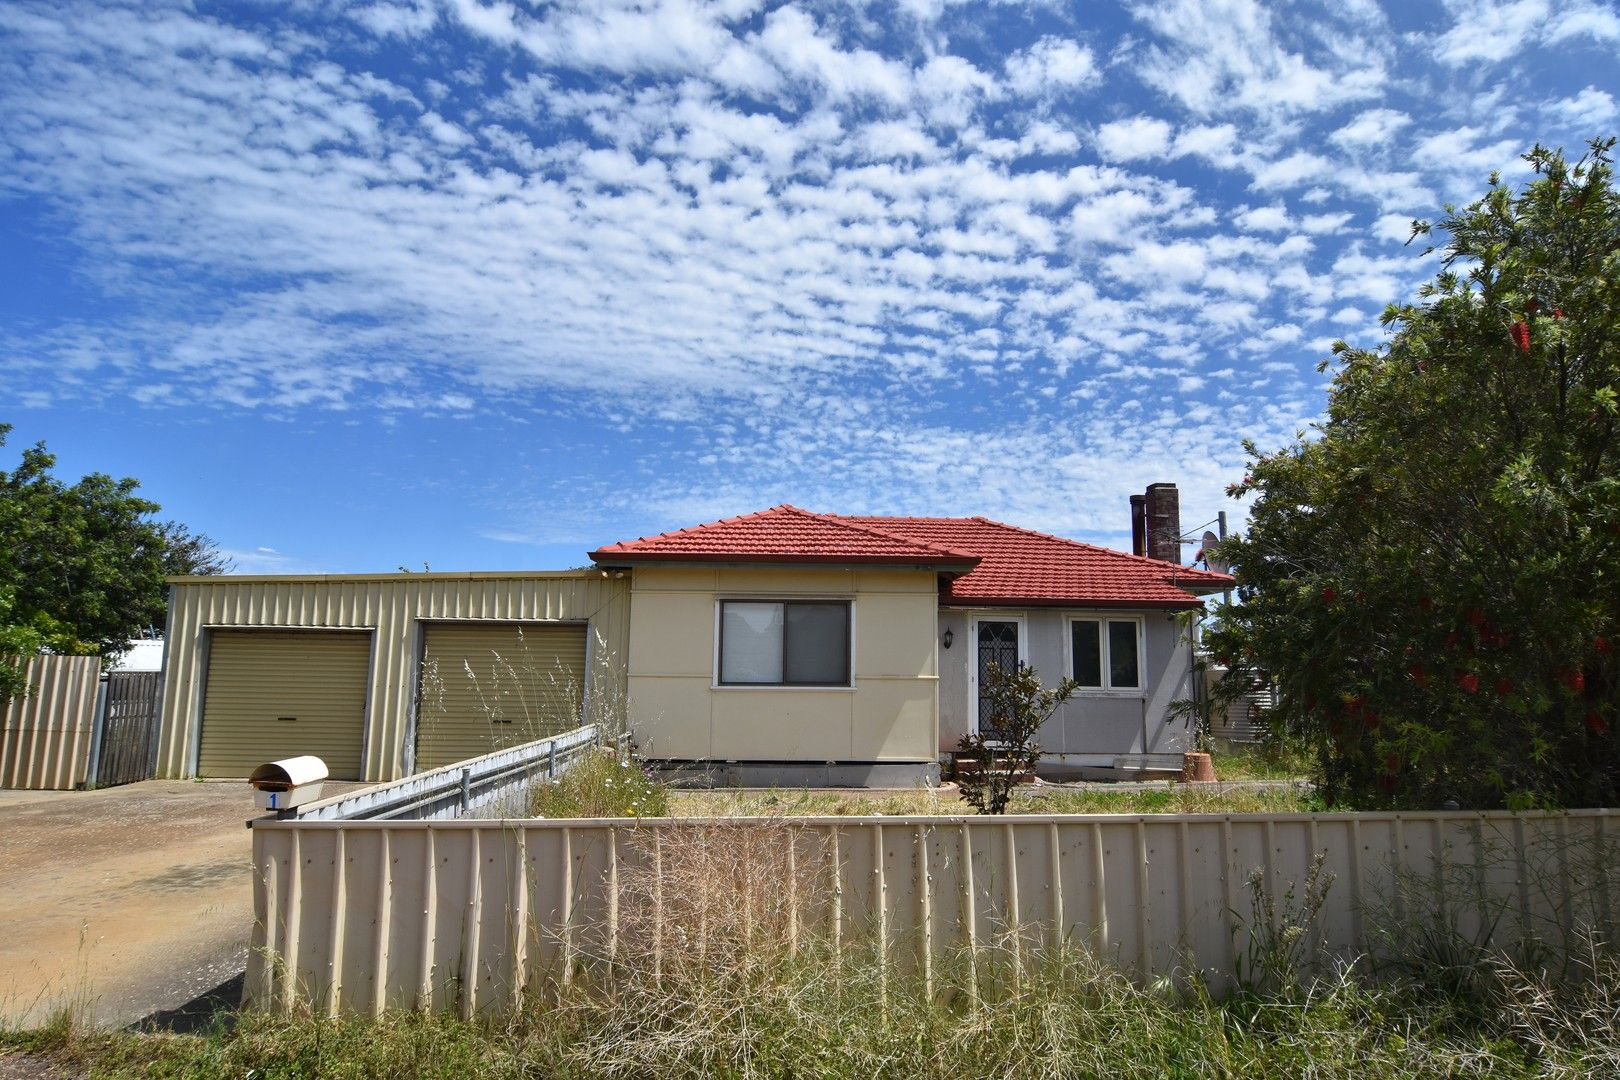 3 bedrooms House in 1 White Place NULSEN WA, 6450